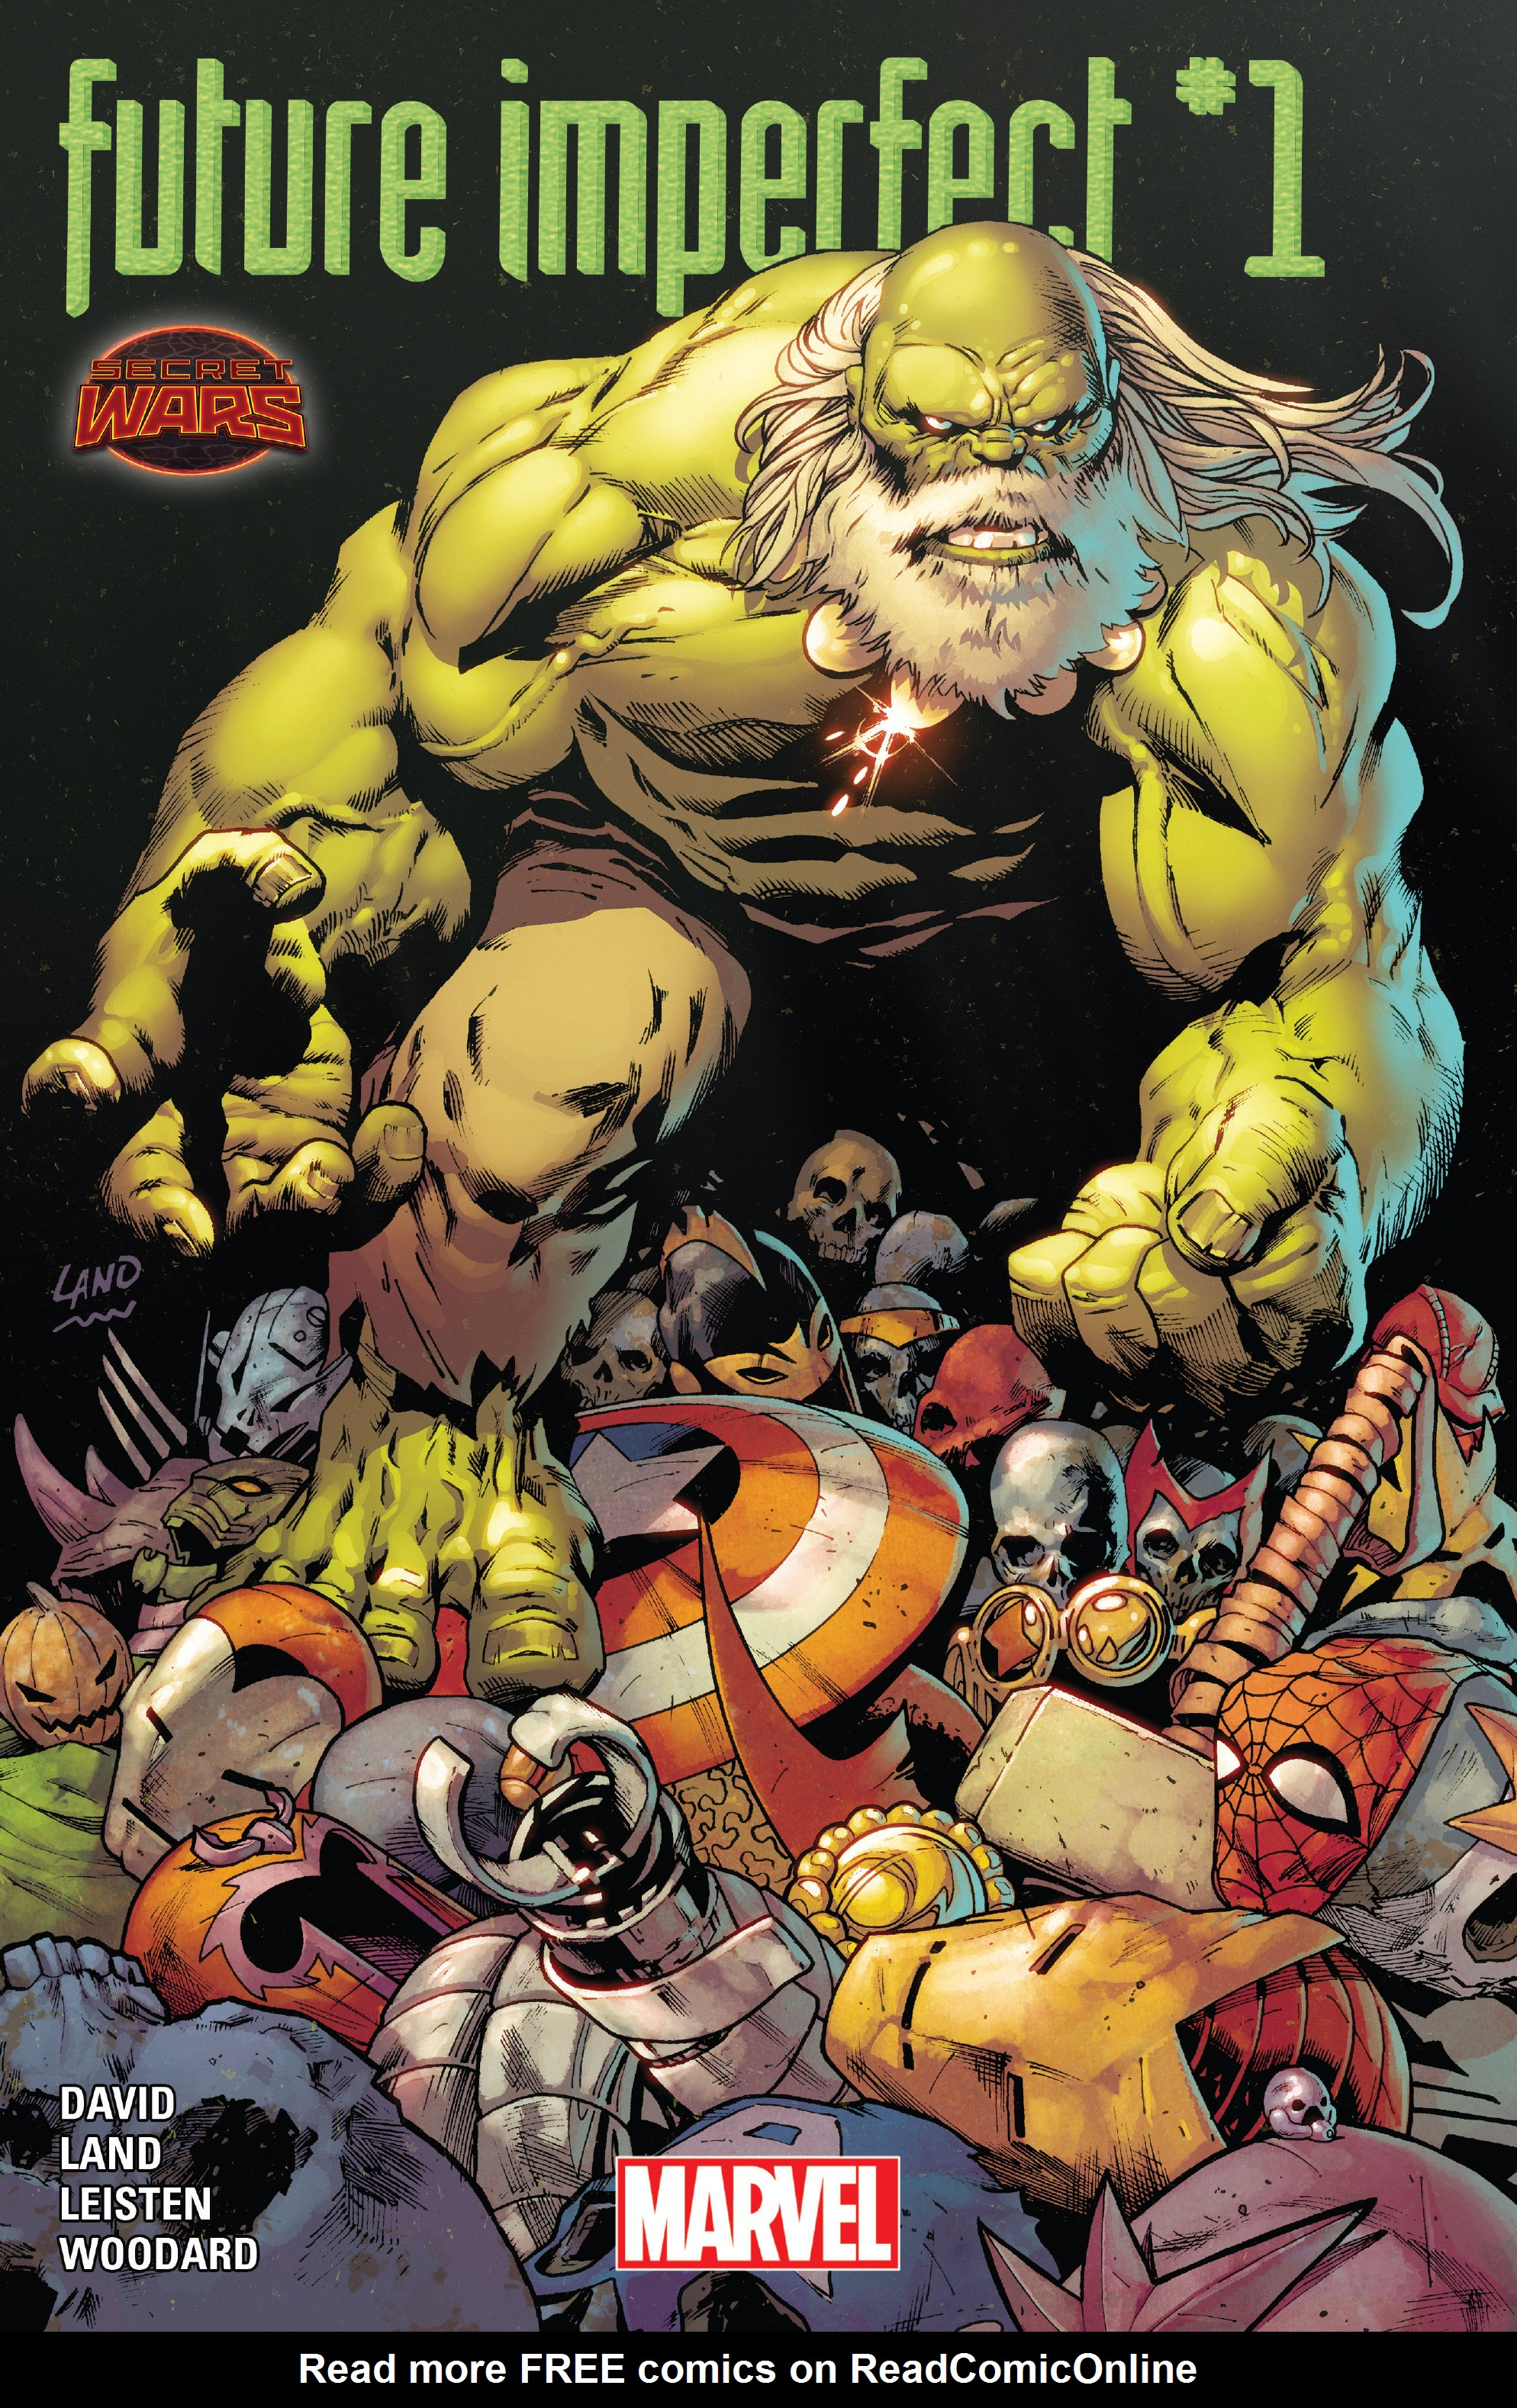 Read online Future Imperfect comic -  Issue #1 - 1